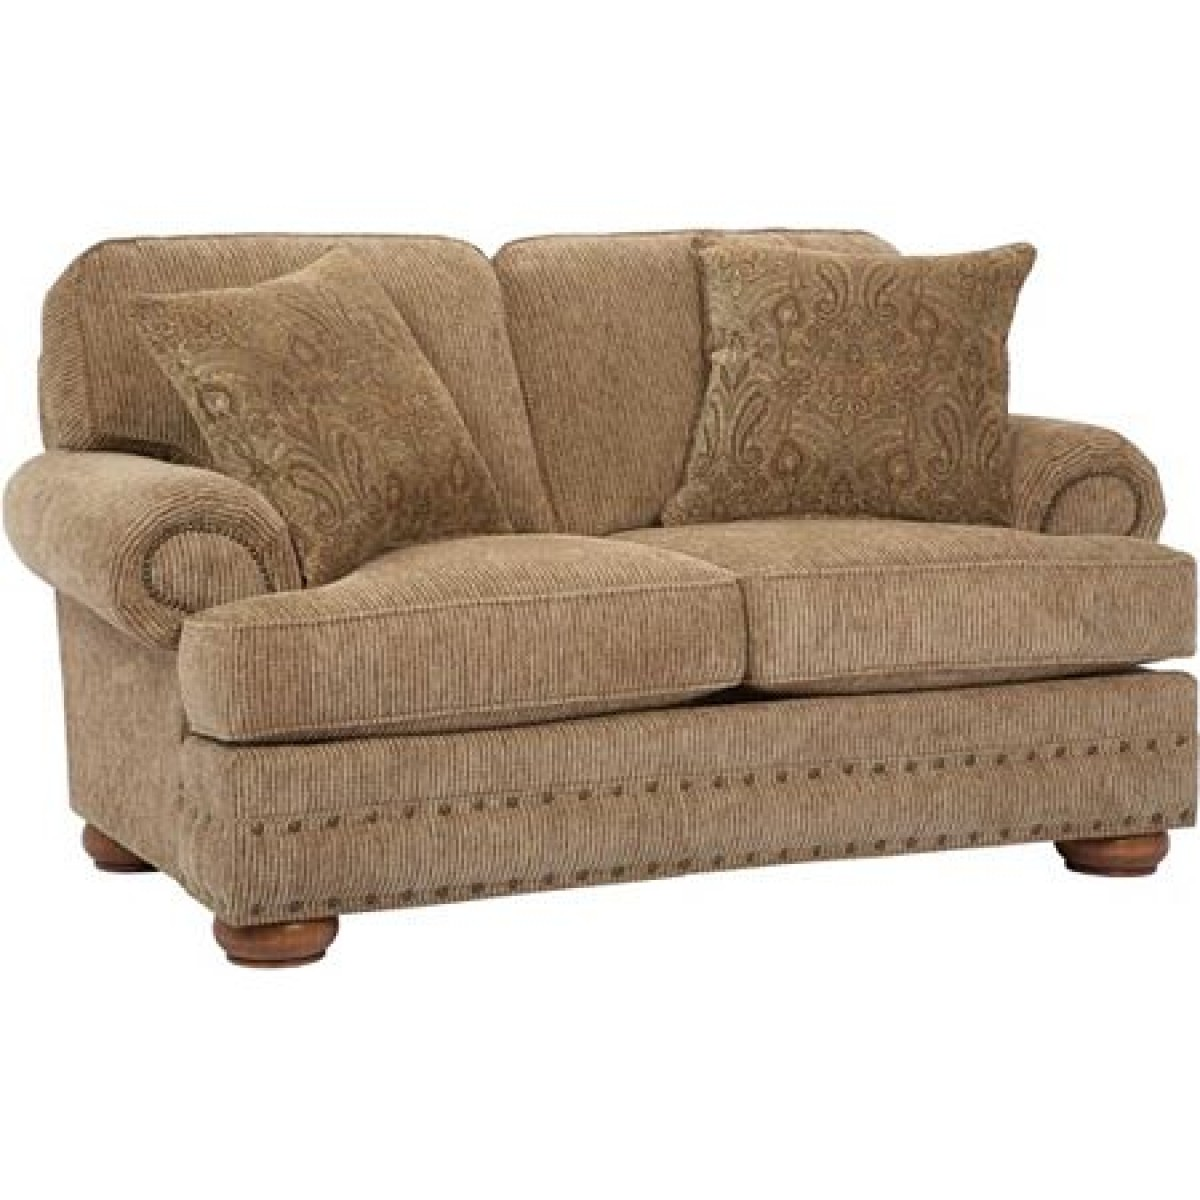 Sofas Couches Give Yourself The Best Rest And Relaxation Soft